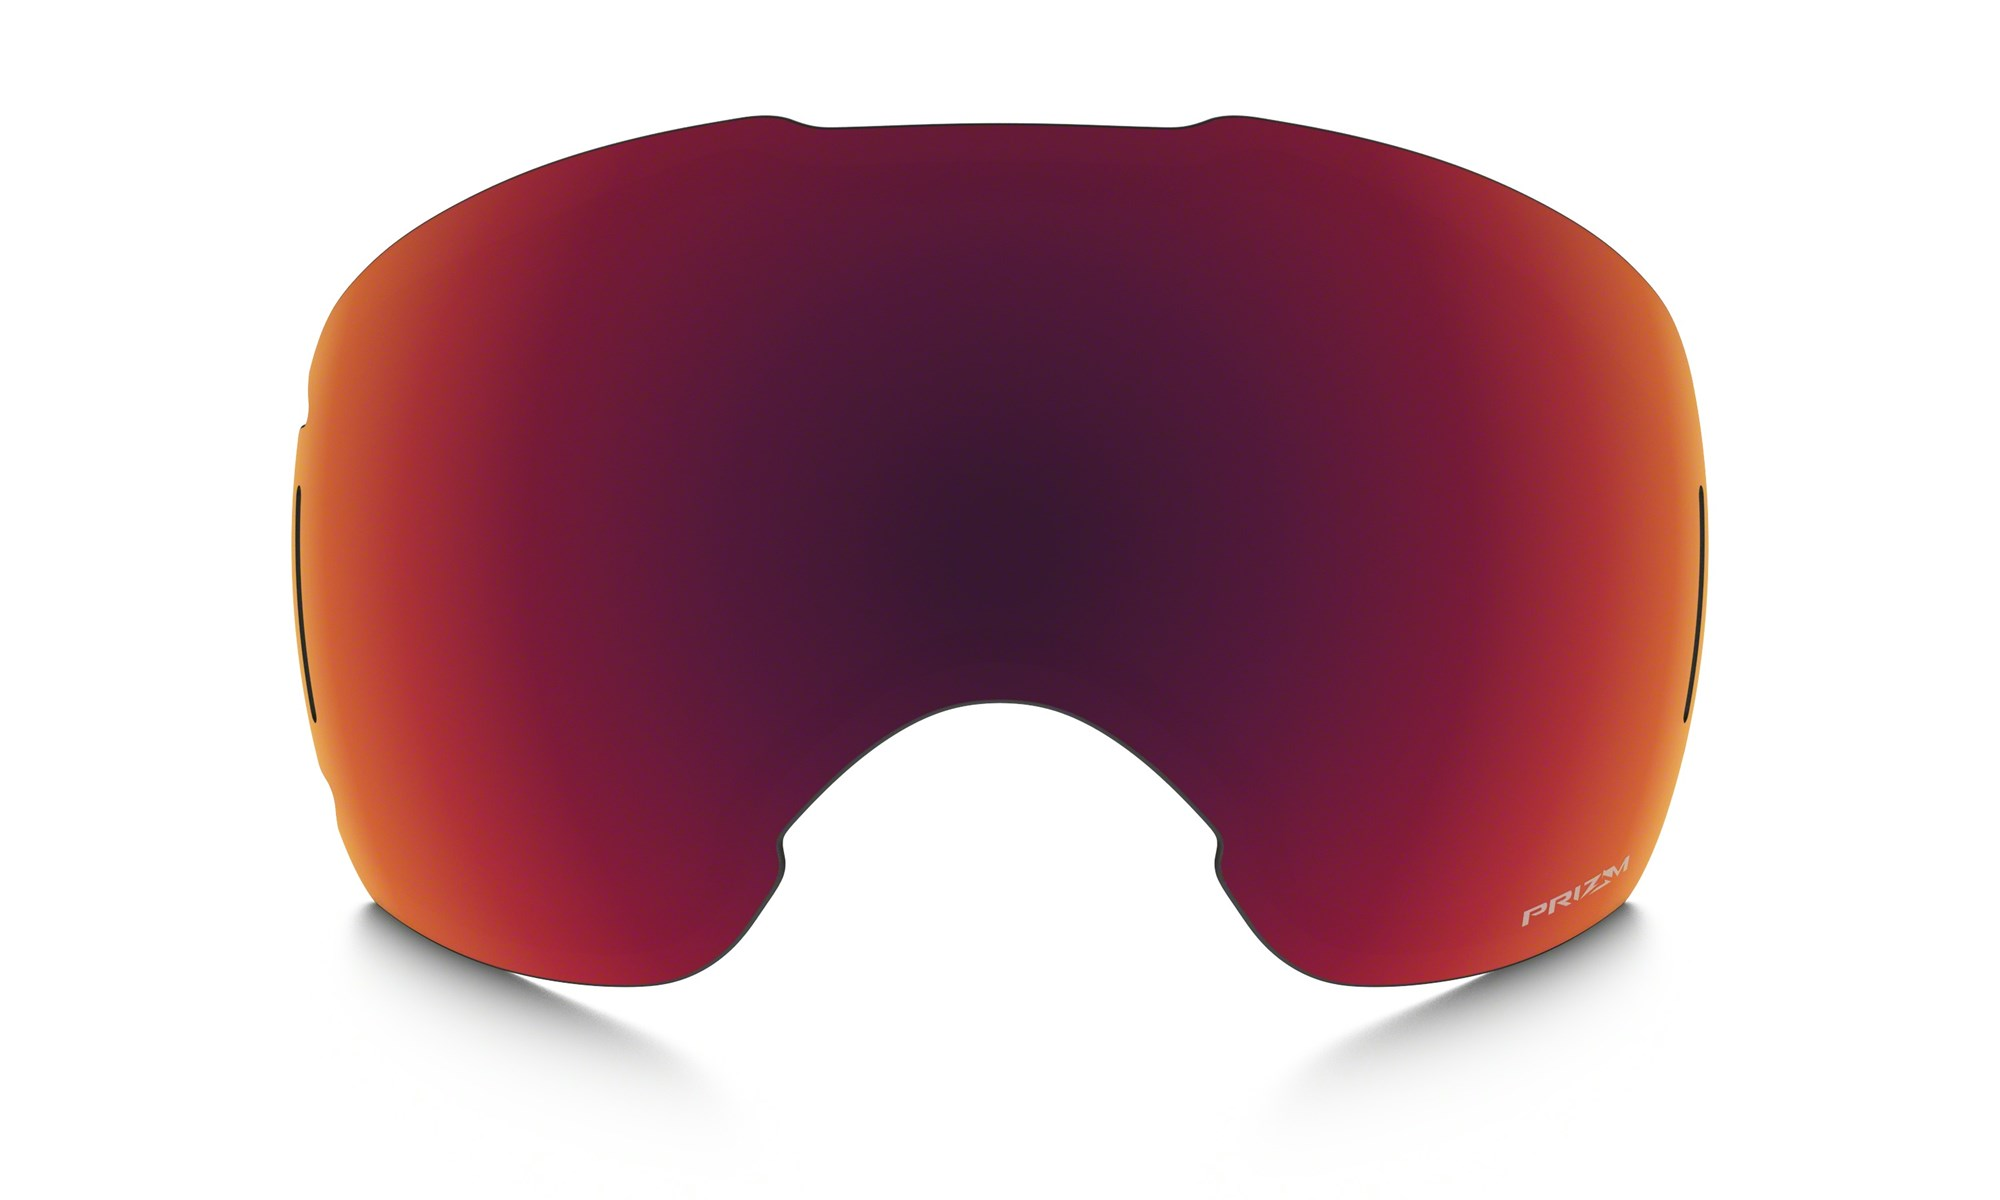 7eb5c4d15f Oakley Airbrake XL Replacement Goggle Lens Prizm Torch. 0 (Be the first to  add a review!)